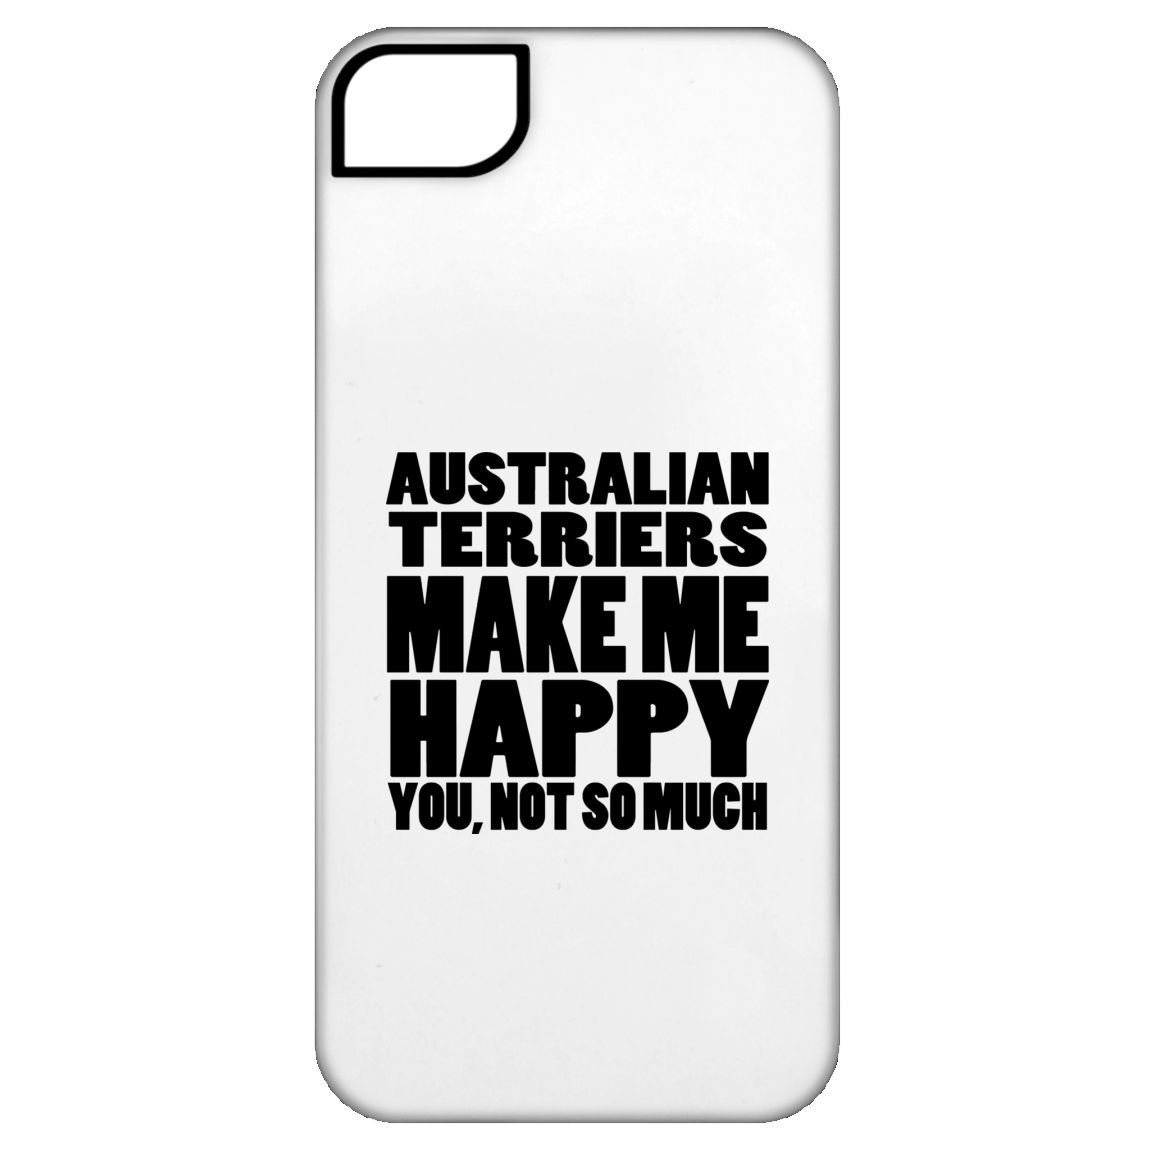 Australian Terriers Make Me Happy You Not So Much iPhone 5 Cases